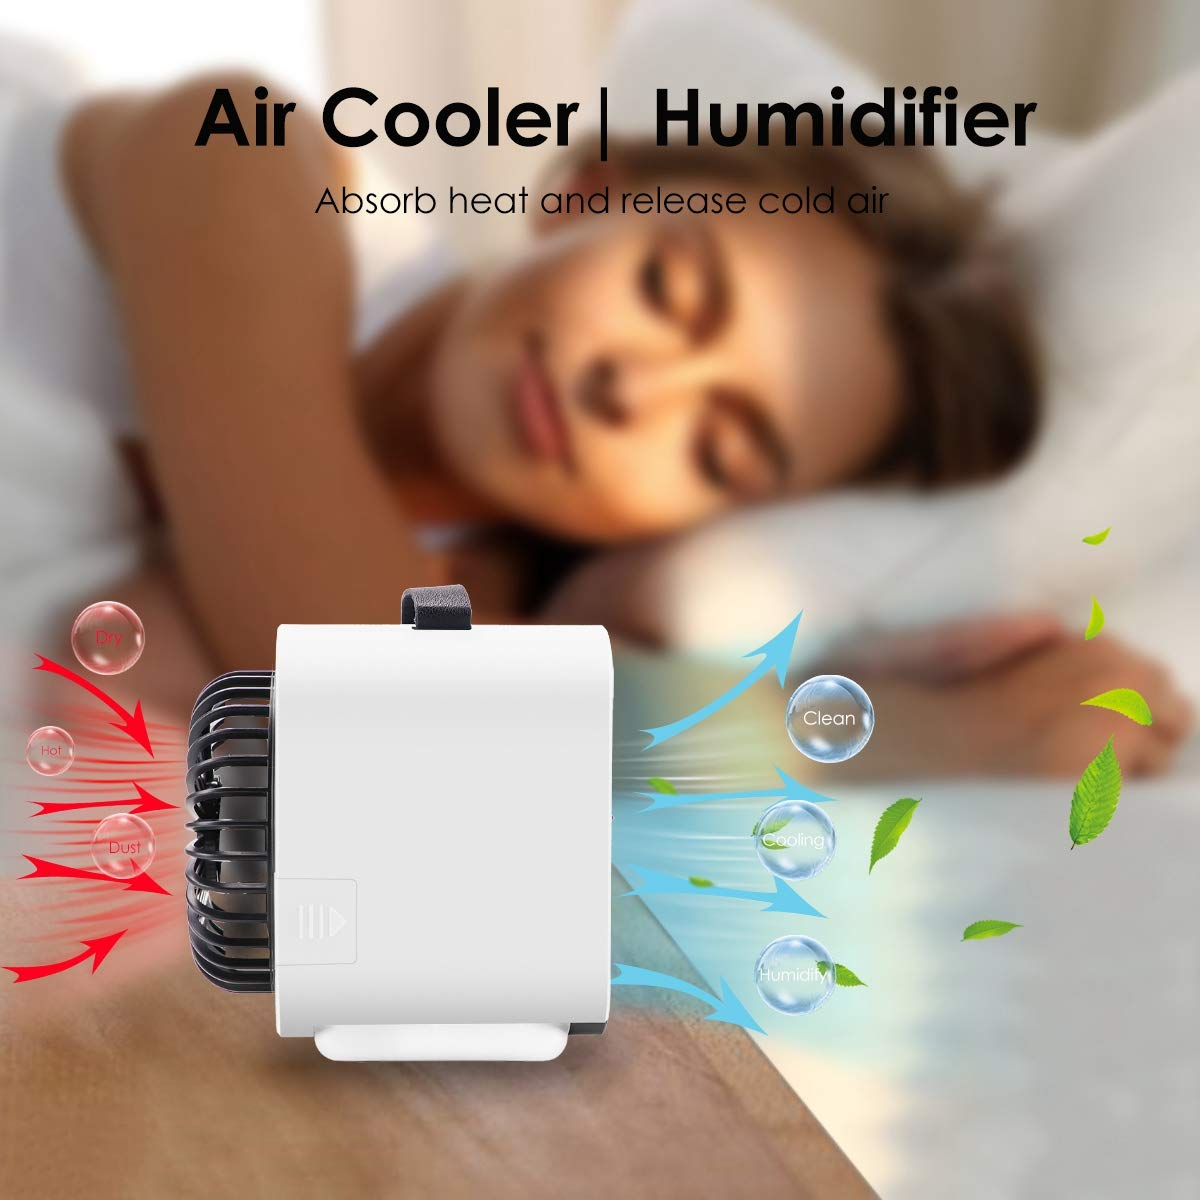 White VRZTLAI Portable Air Conditioner Fan Personal Space Air Cooler Mini USB Rechargeable Desk Fan Small Evaporative Cooler Purifier Humidifier with Handle /& Night Light for Office Home Outdoors